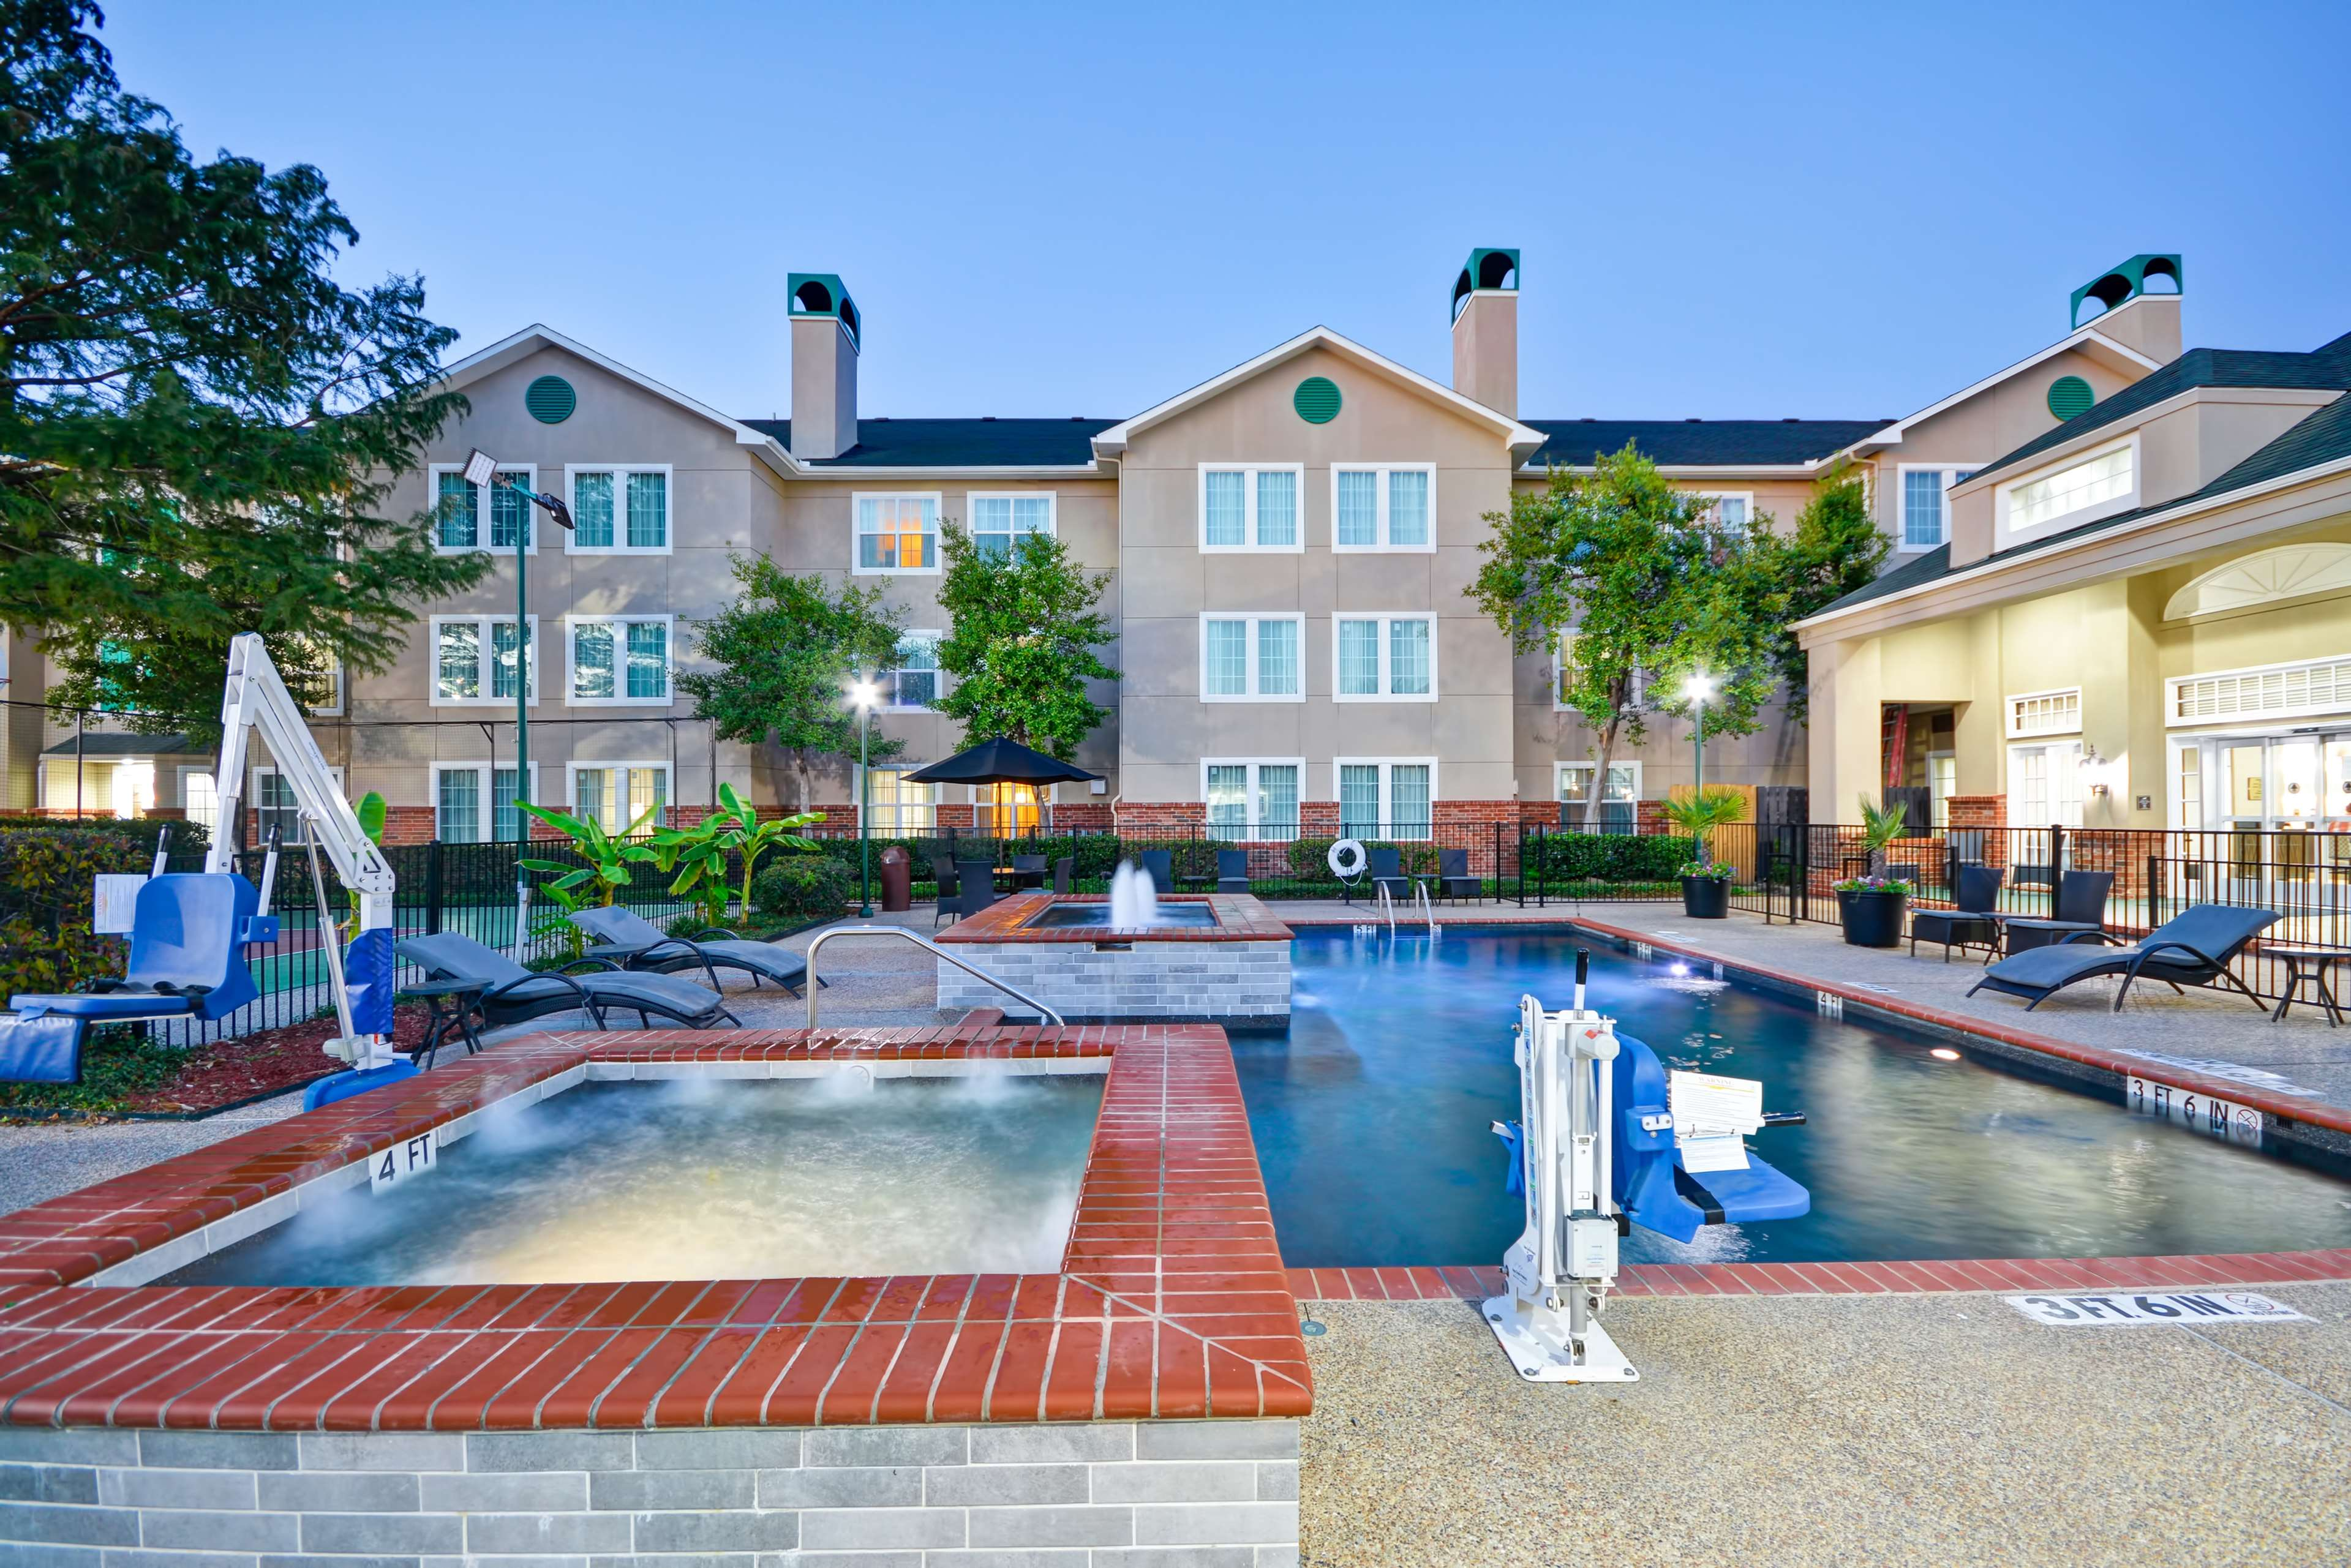 Homewood Suites by Hilton Dallas-Lewisville image 6